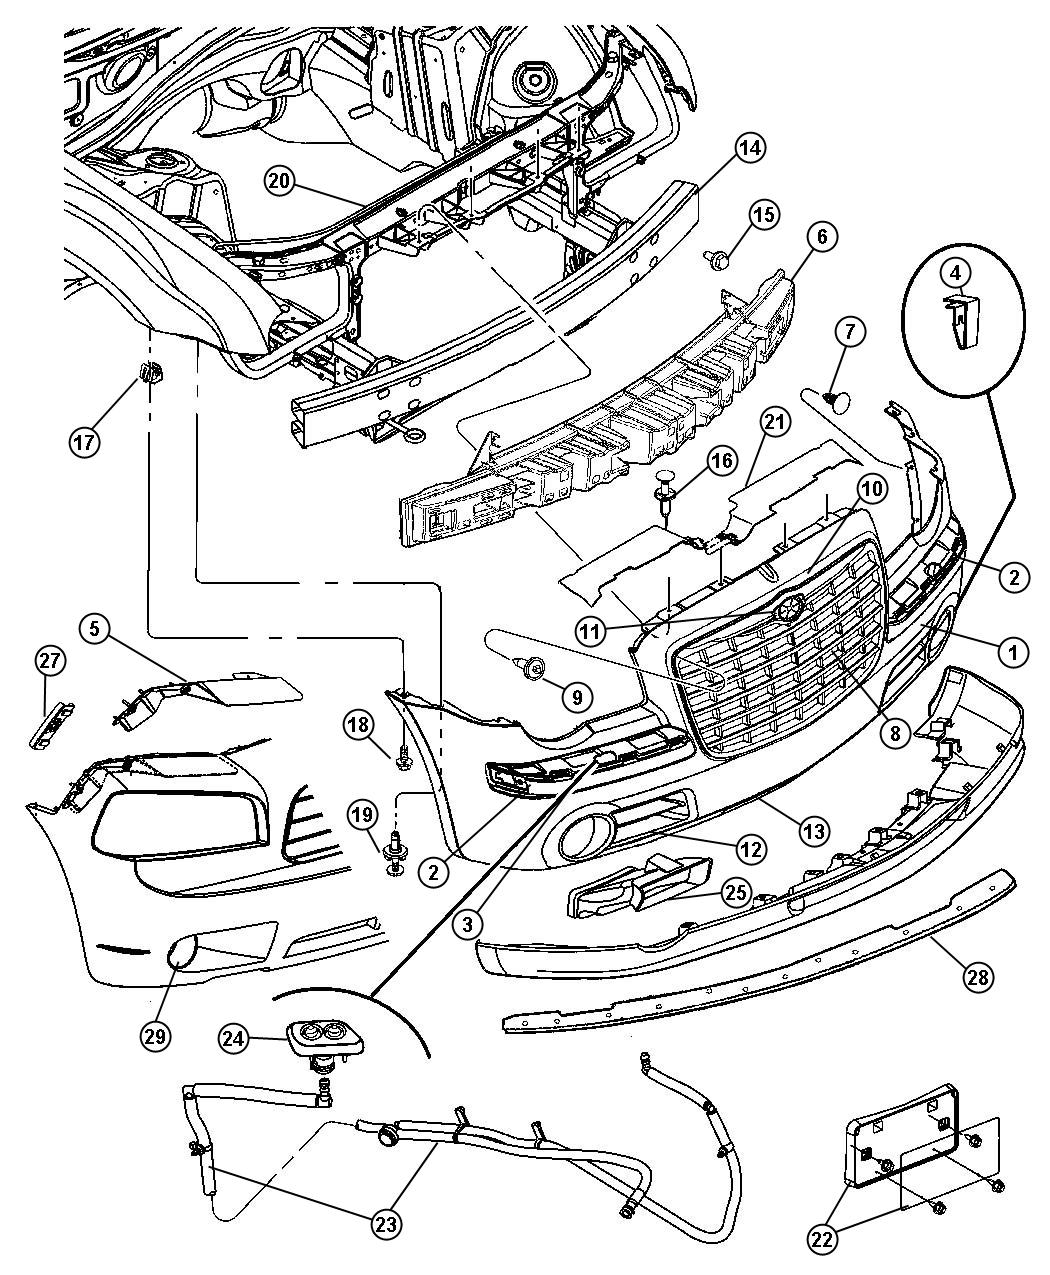 2008 Chrysler Town And Country Transmission Diagram, 2008